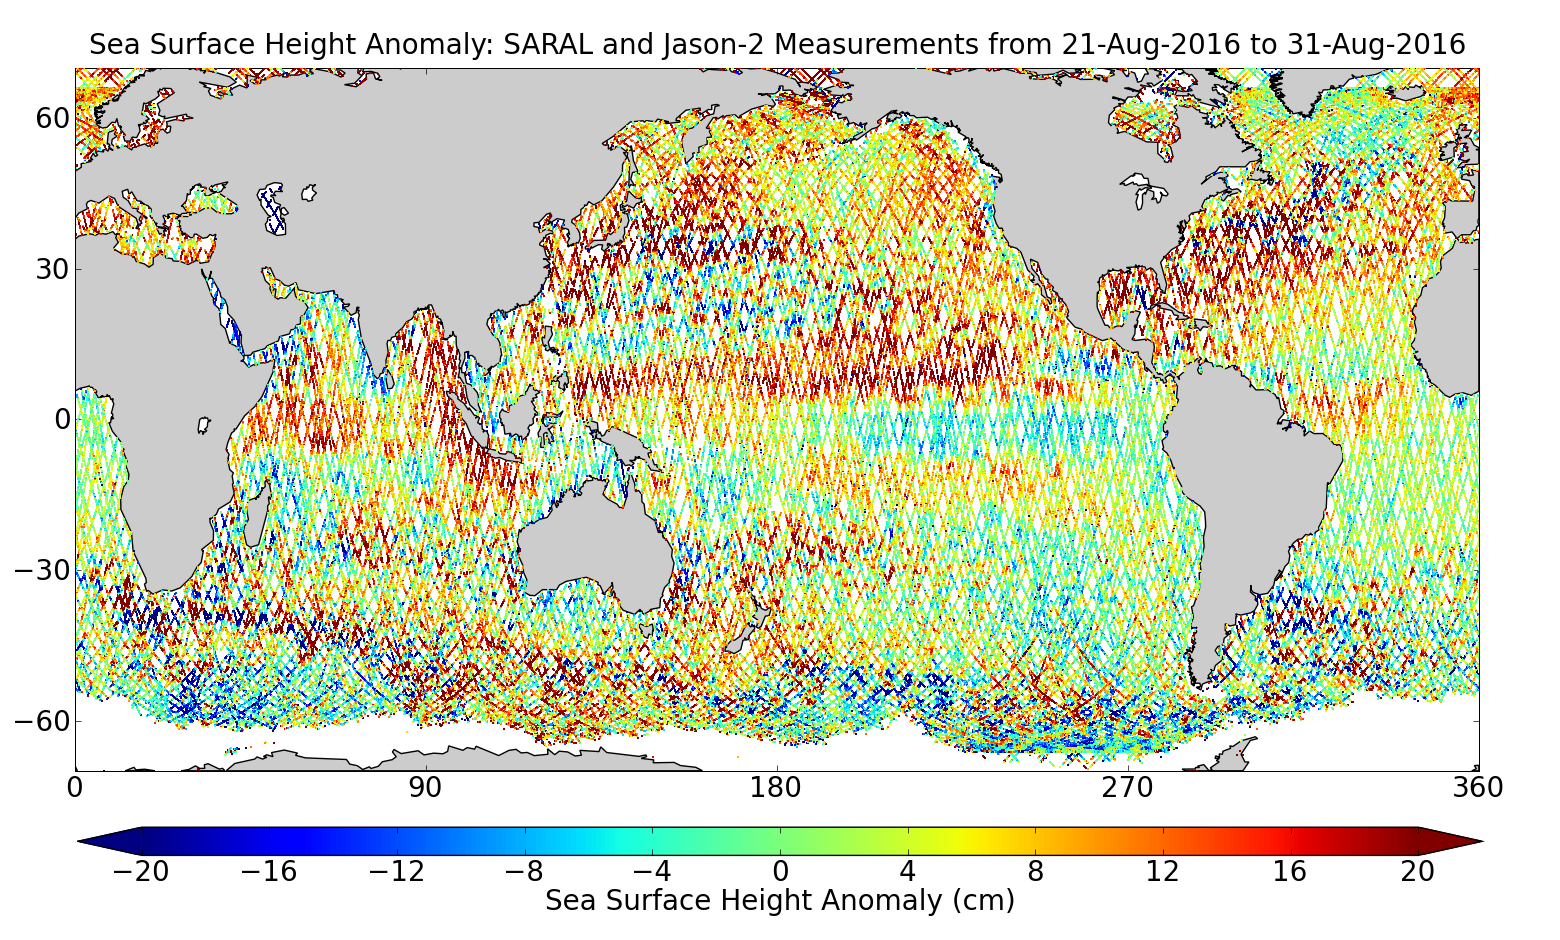 Sea Surface Height Anomaly: SARAL and Jason-2 Measurements from 21-Aug-2016 to 31-Aug-2016